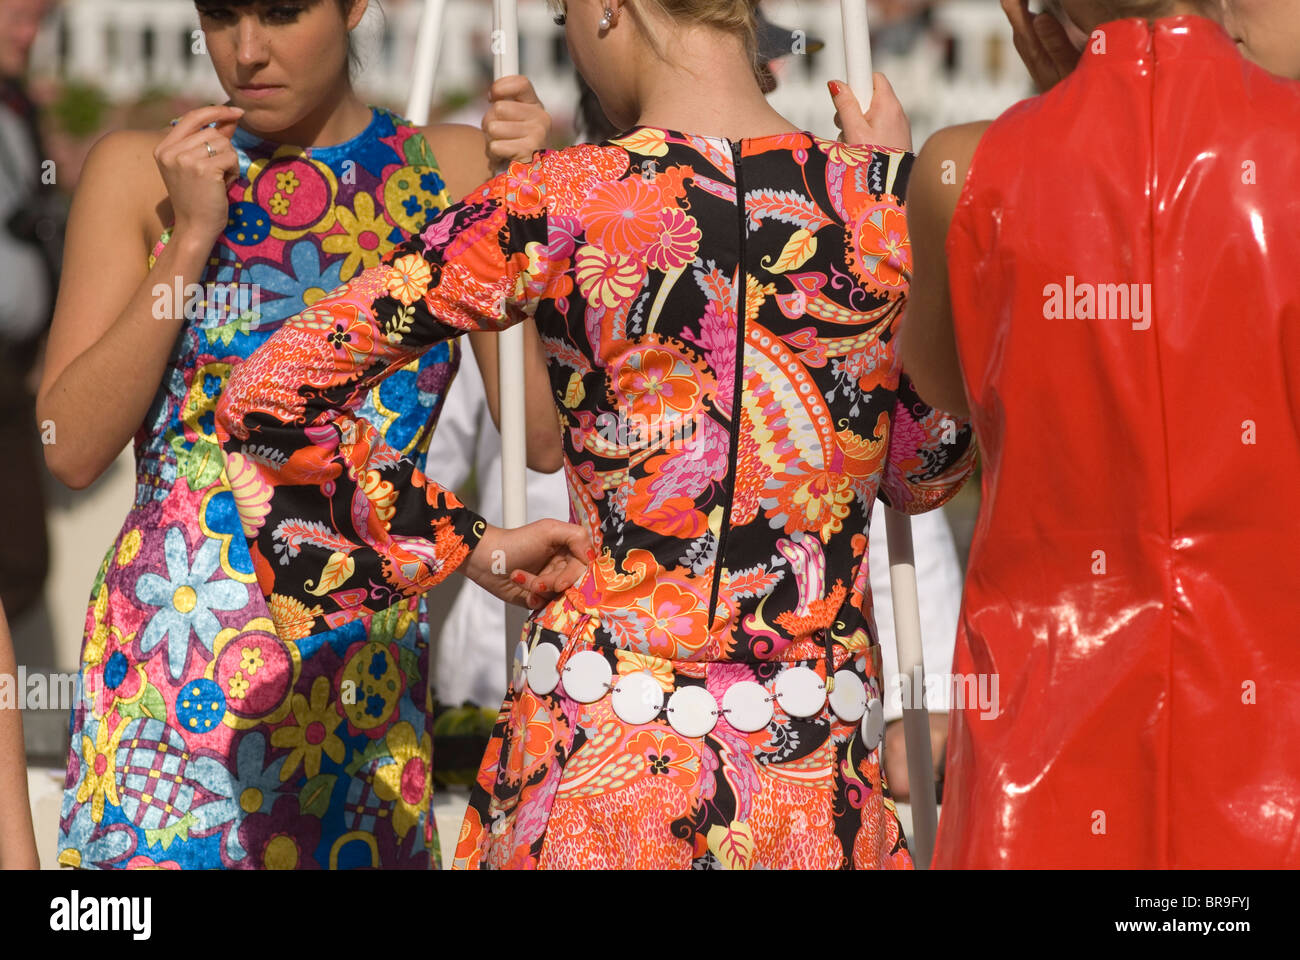 Goodwood Festival of Speed. Goodwood Sussex UK. Les jeunes filles portant des vêtements rétro. HOMER SYKES Photo Stock